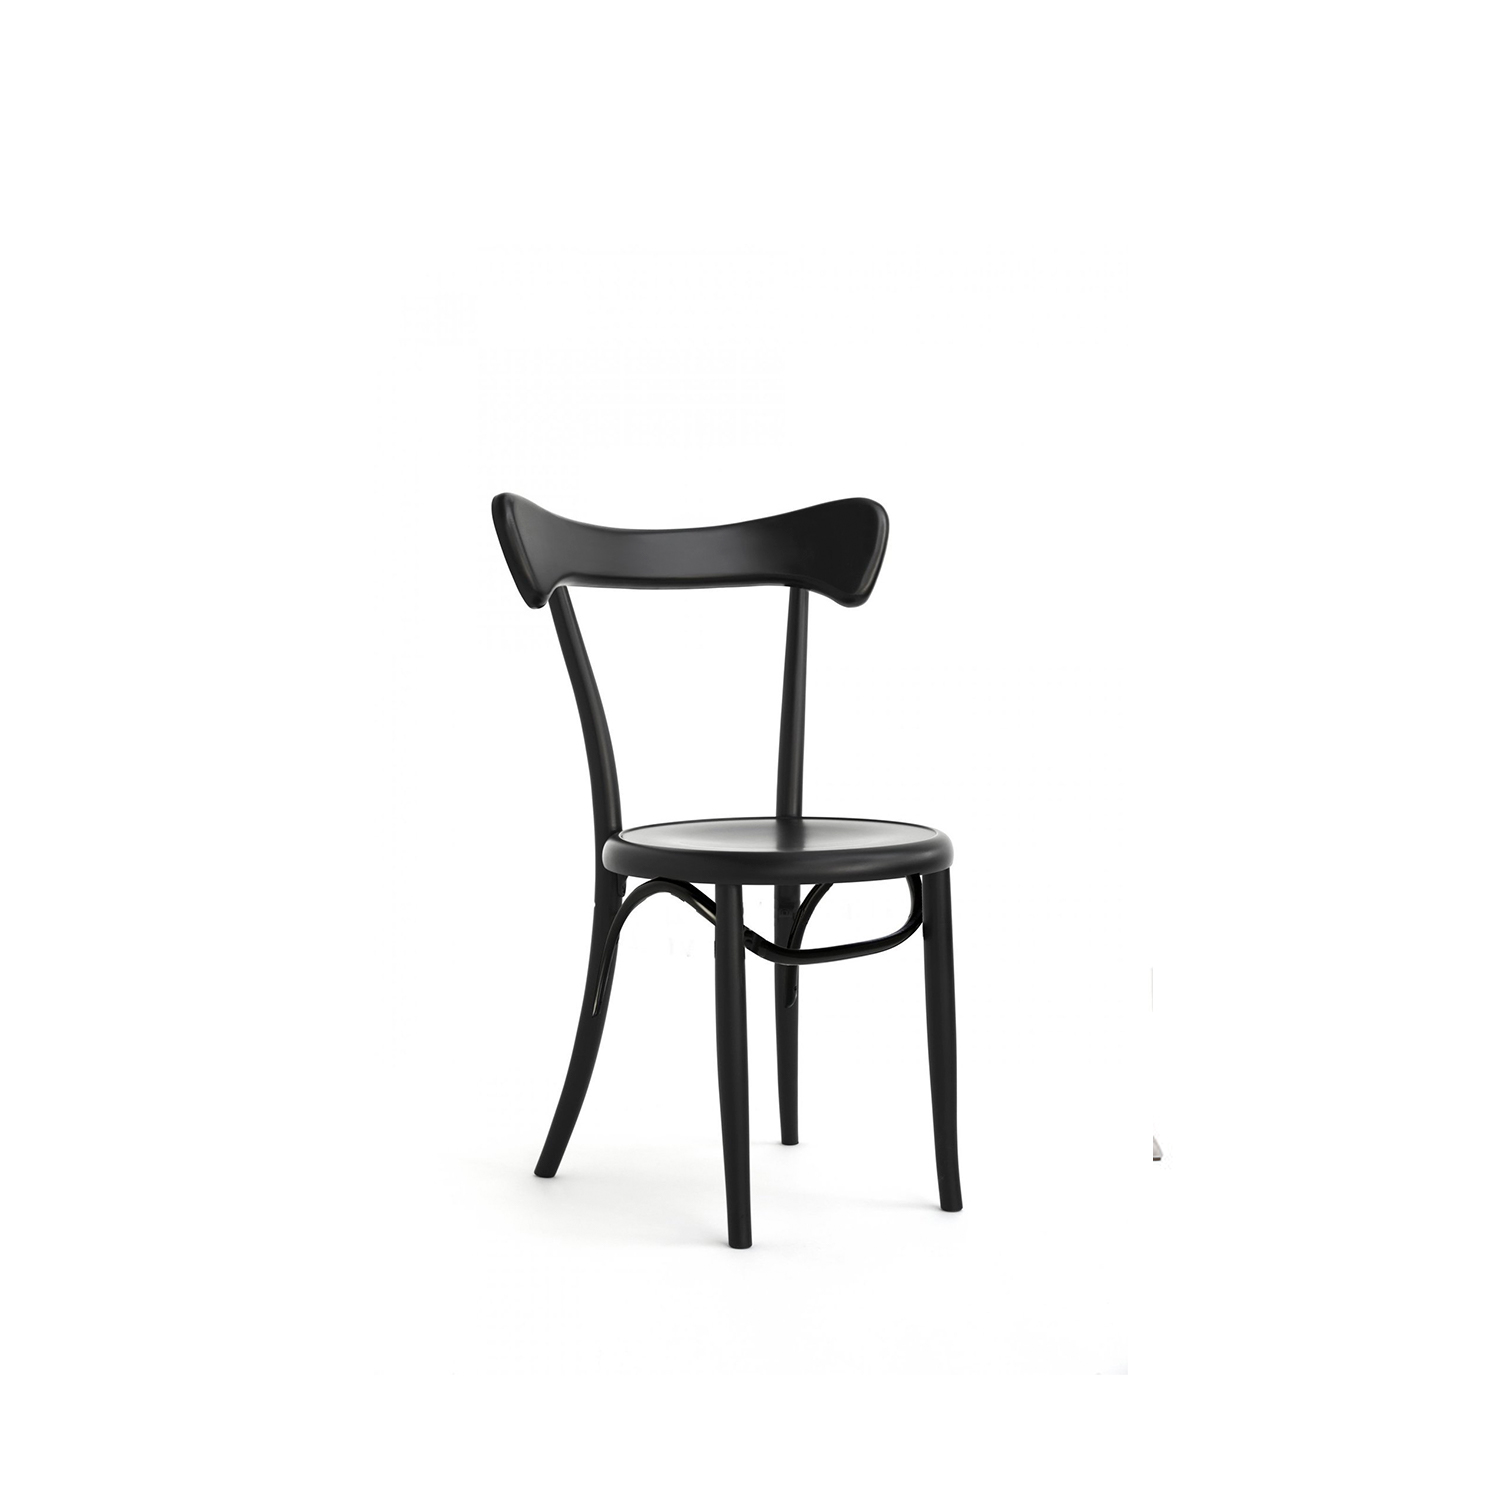 Black Cafestuhl Upholstery  Chair - This elegant chair combines the traditional bent beechwood of Viennese-styled furniture with an ergonomic and sinuous backrest. Either arranged in multiples or combined with the Bodystuhl and the Bistrostuhl around a modern table, this exquisite chair will imbue any home or elegant restaurant with character and refined taste. | Matter of Stuff